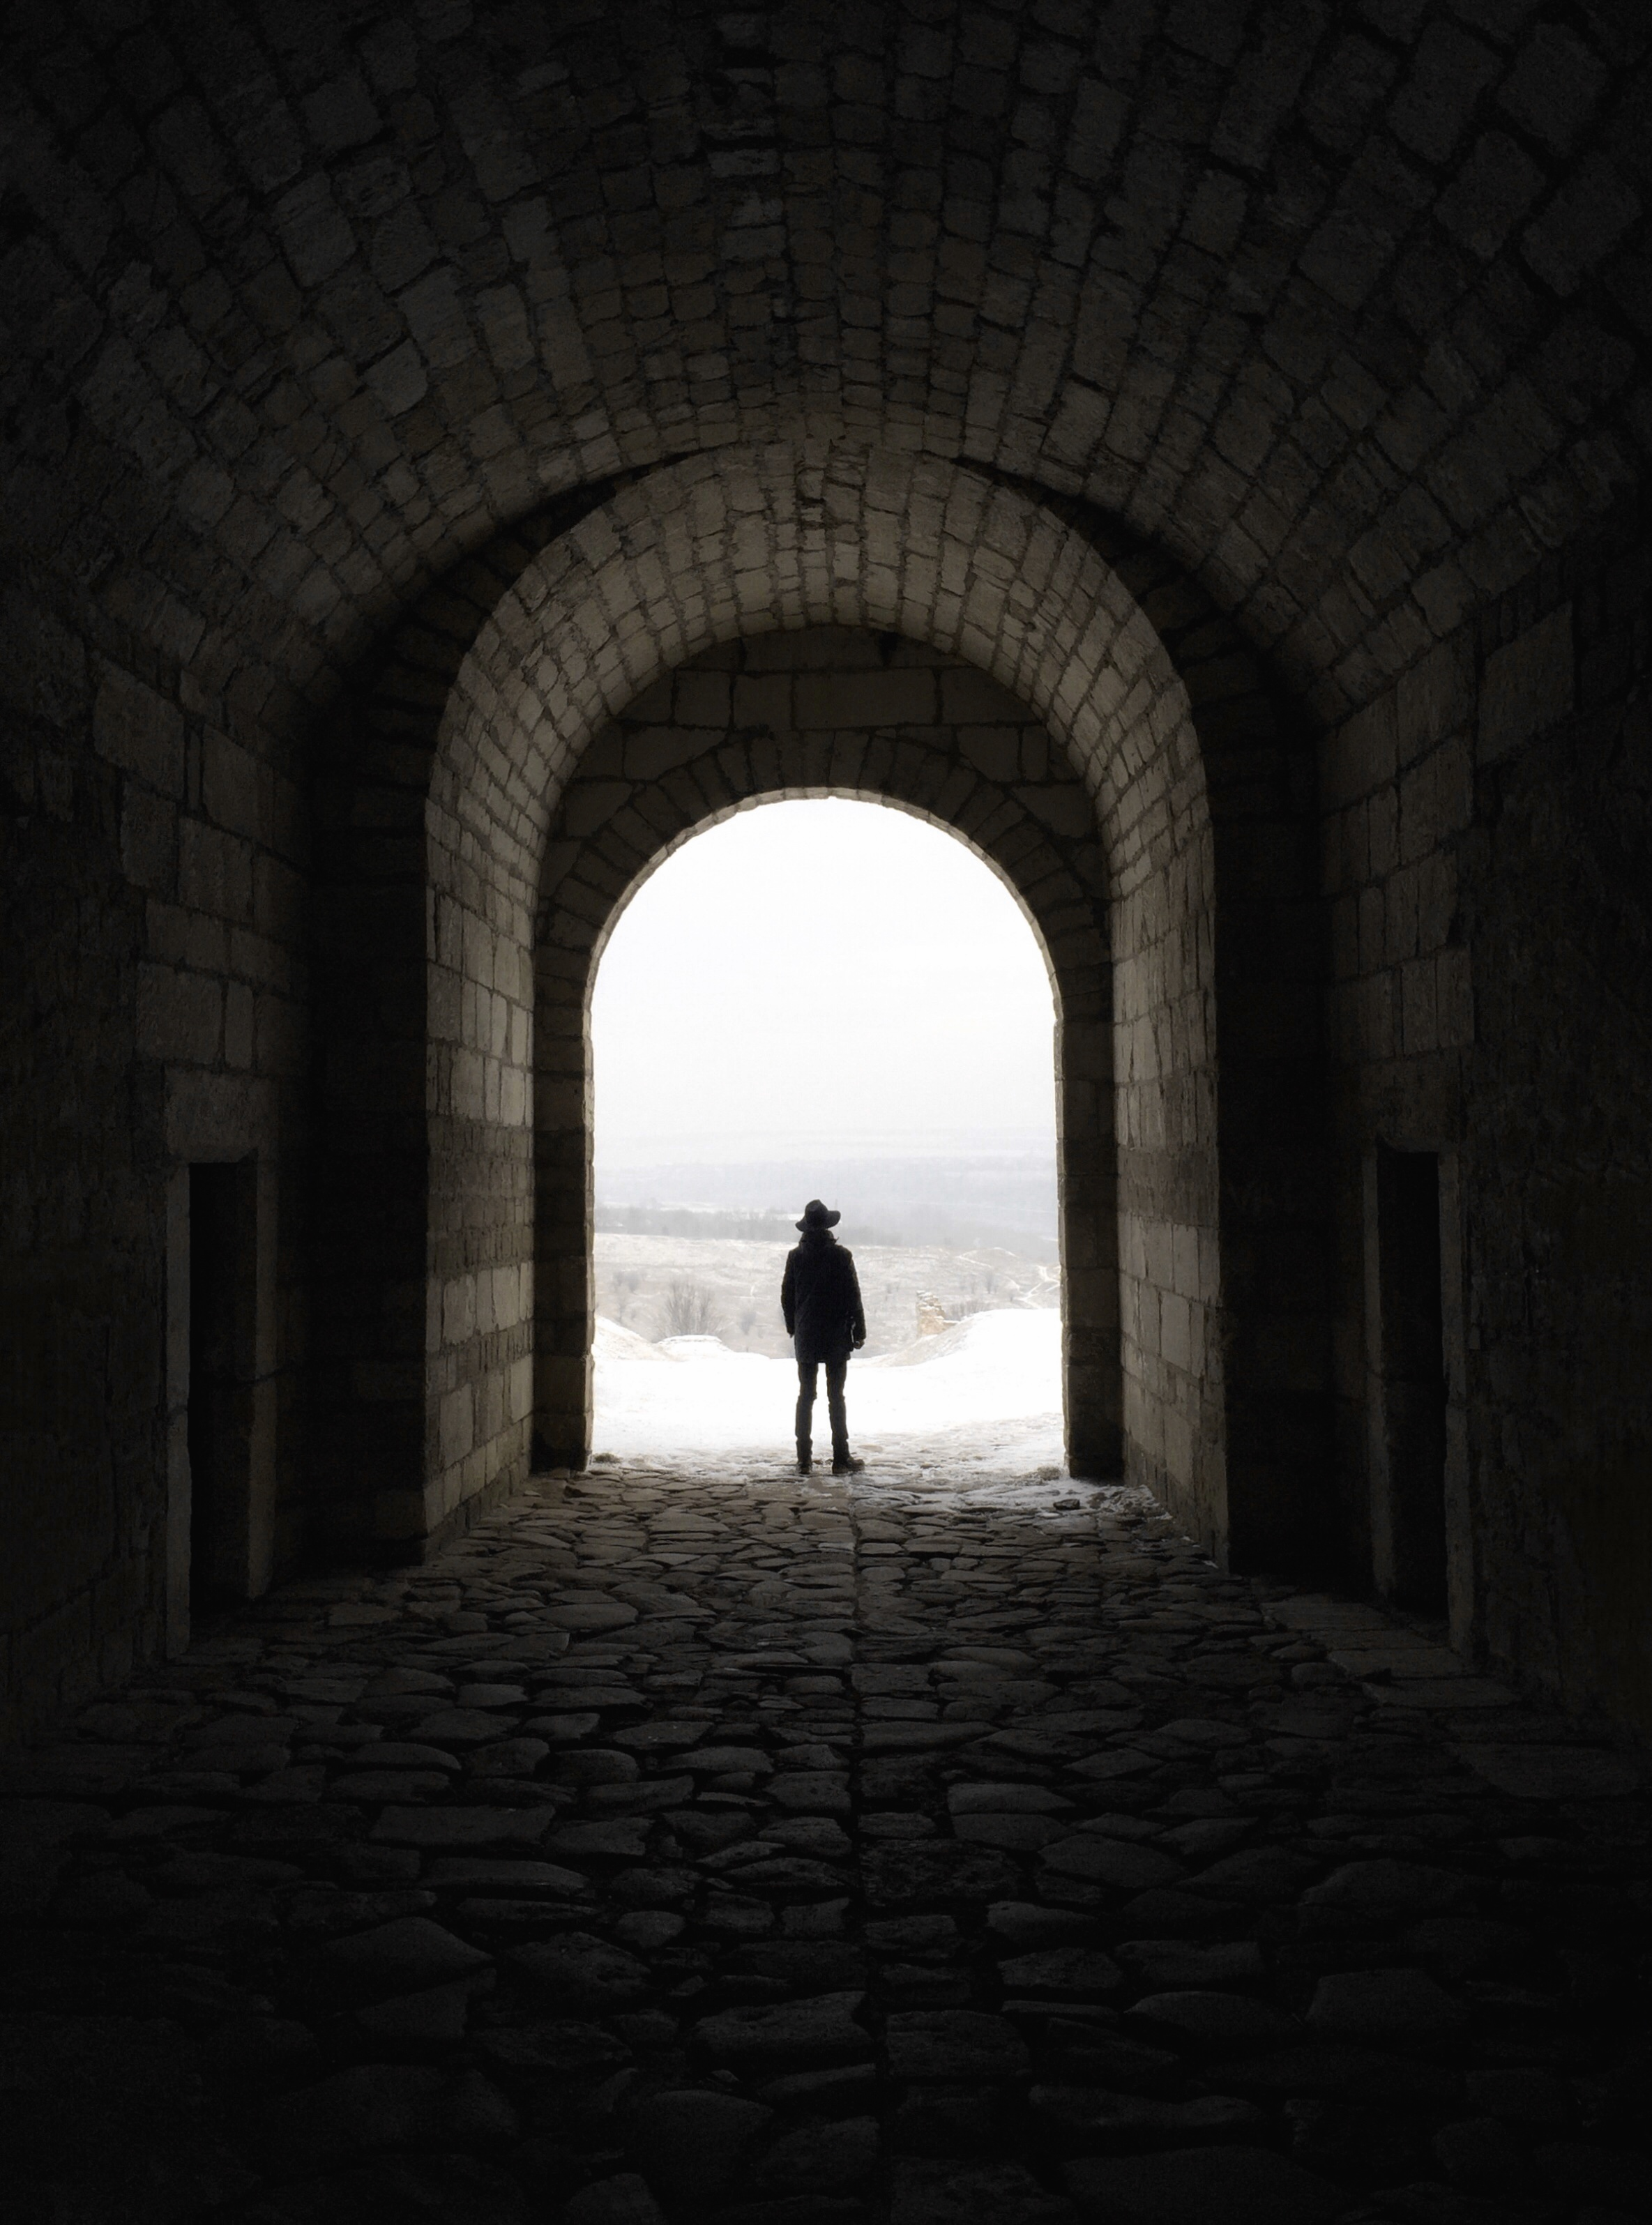 Iphone X Wallpaper Size Perspective Greyscale Photography Of Man Walking On Tunnel 183 Free